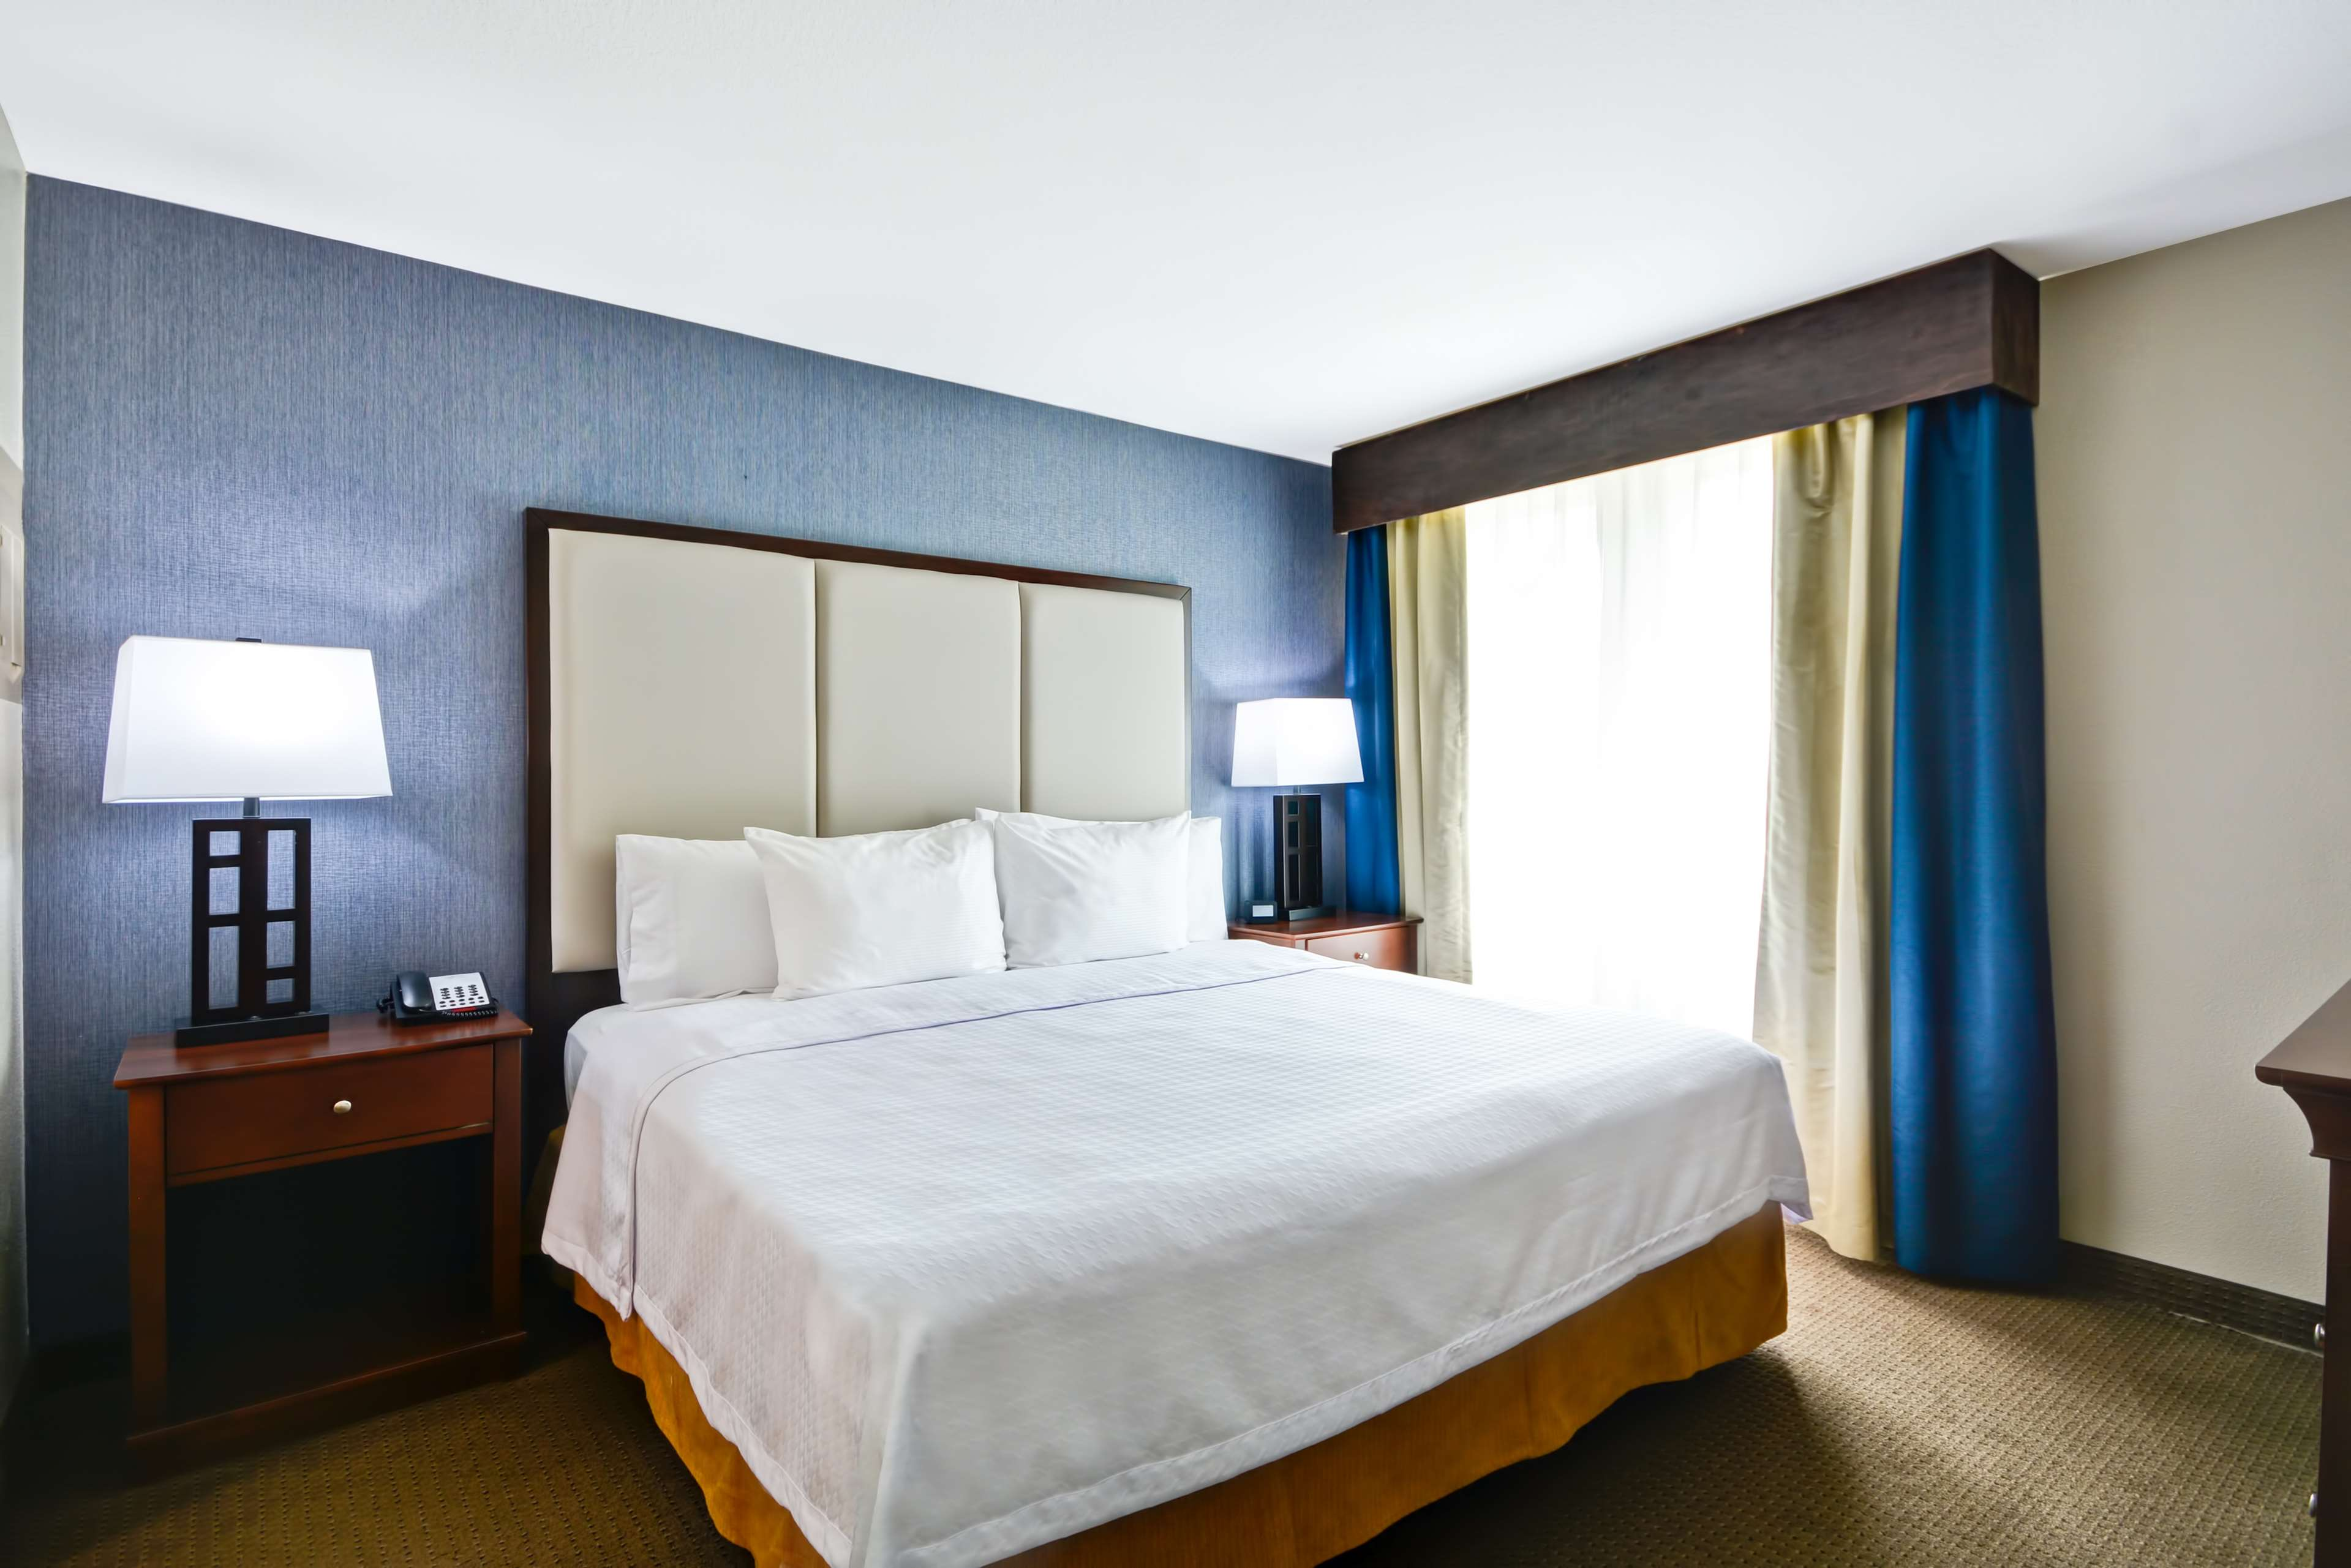 Homewood Suites by Hilton Dallas-Lewisville image 25